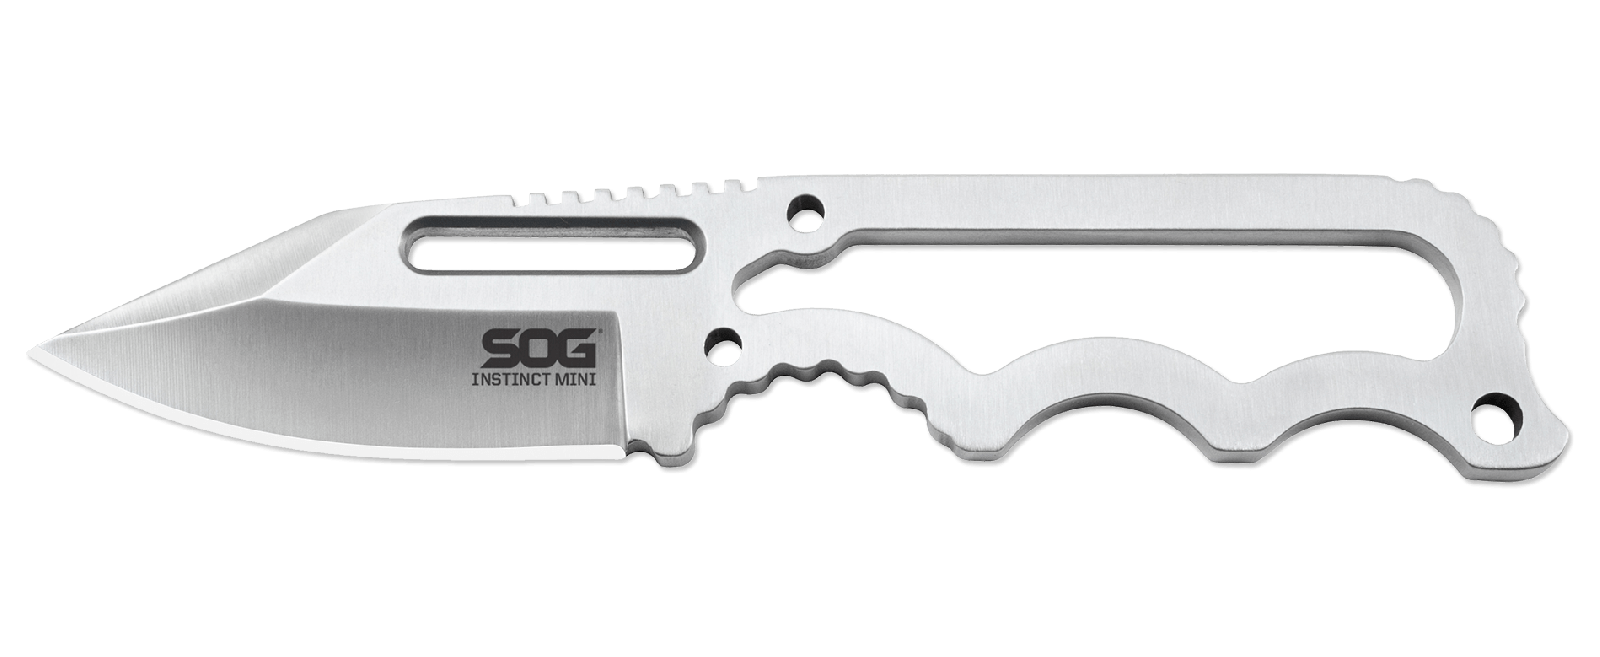 Нож Instinct Mini, SOG складной нож sog tac tactical drop point